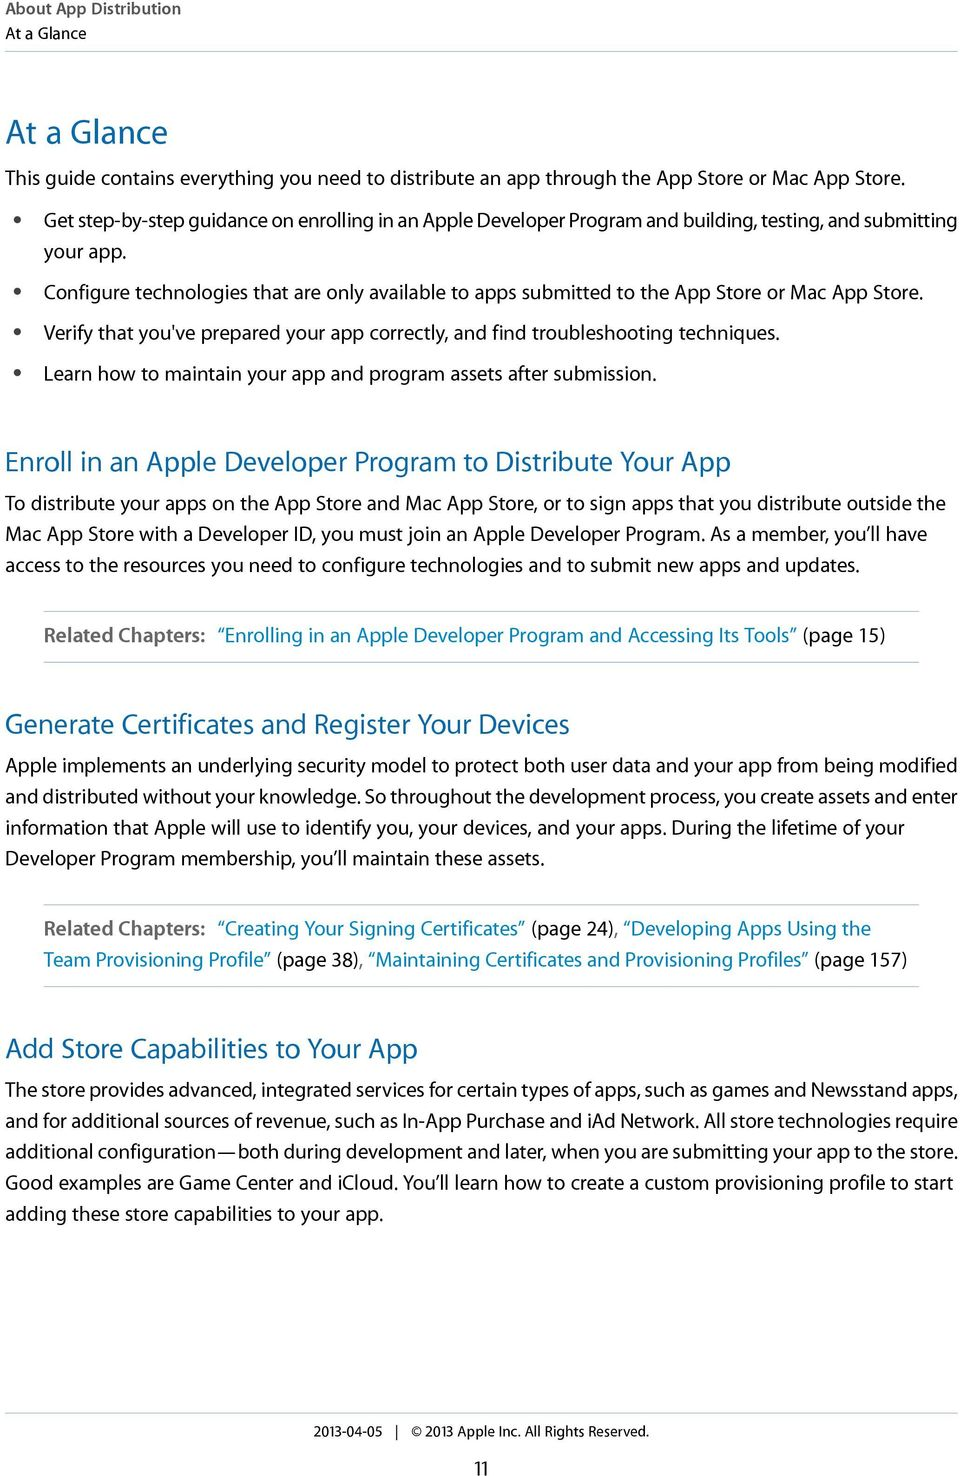 Configure technologies that are only available to apps submitted to the App Store or Mac App Store. Verify that you've prepared your app correctly, and find troubleshooting techniques.